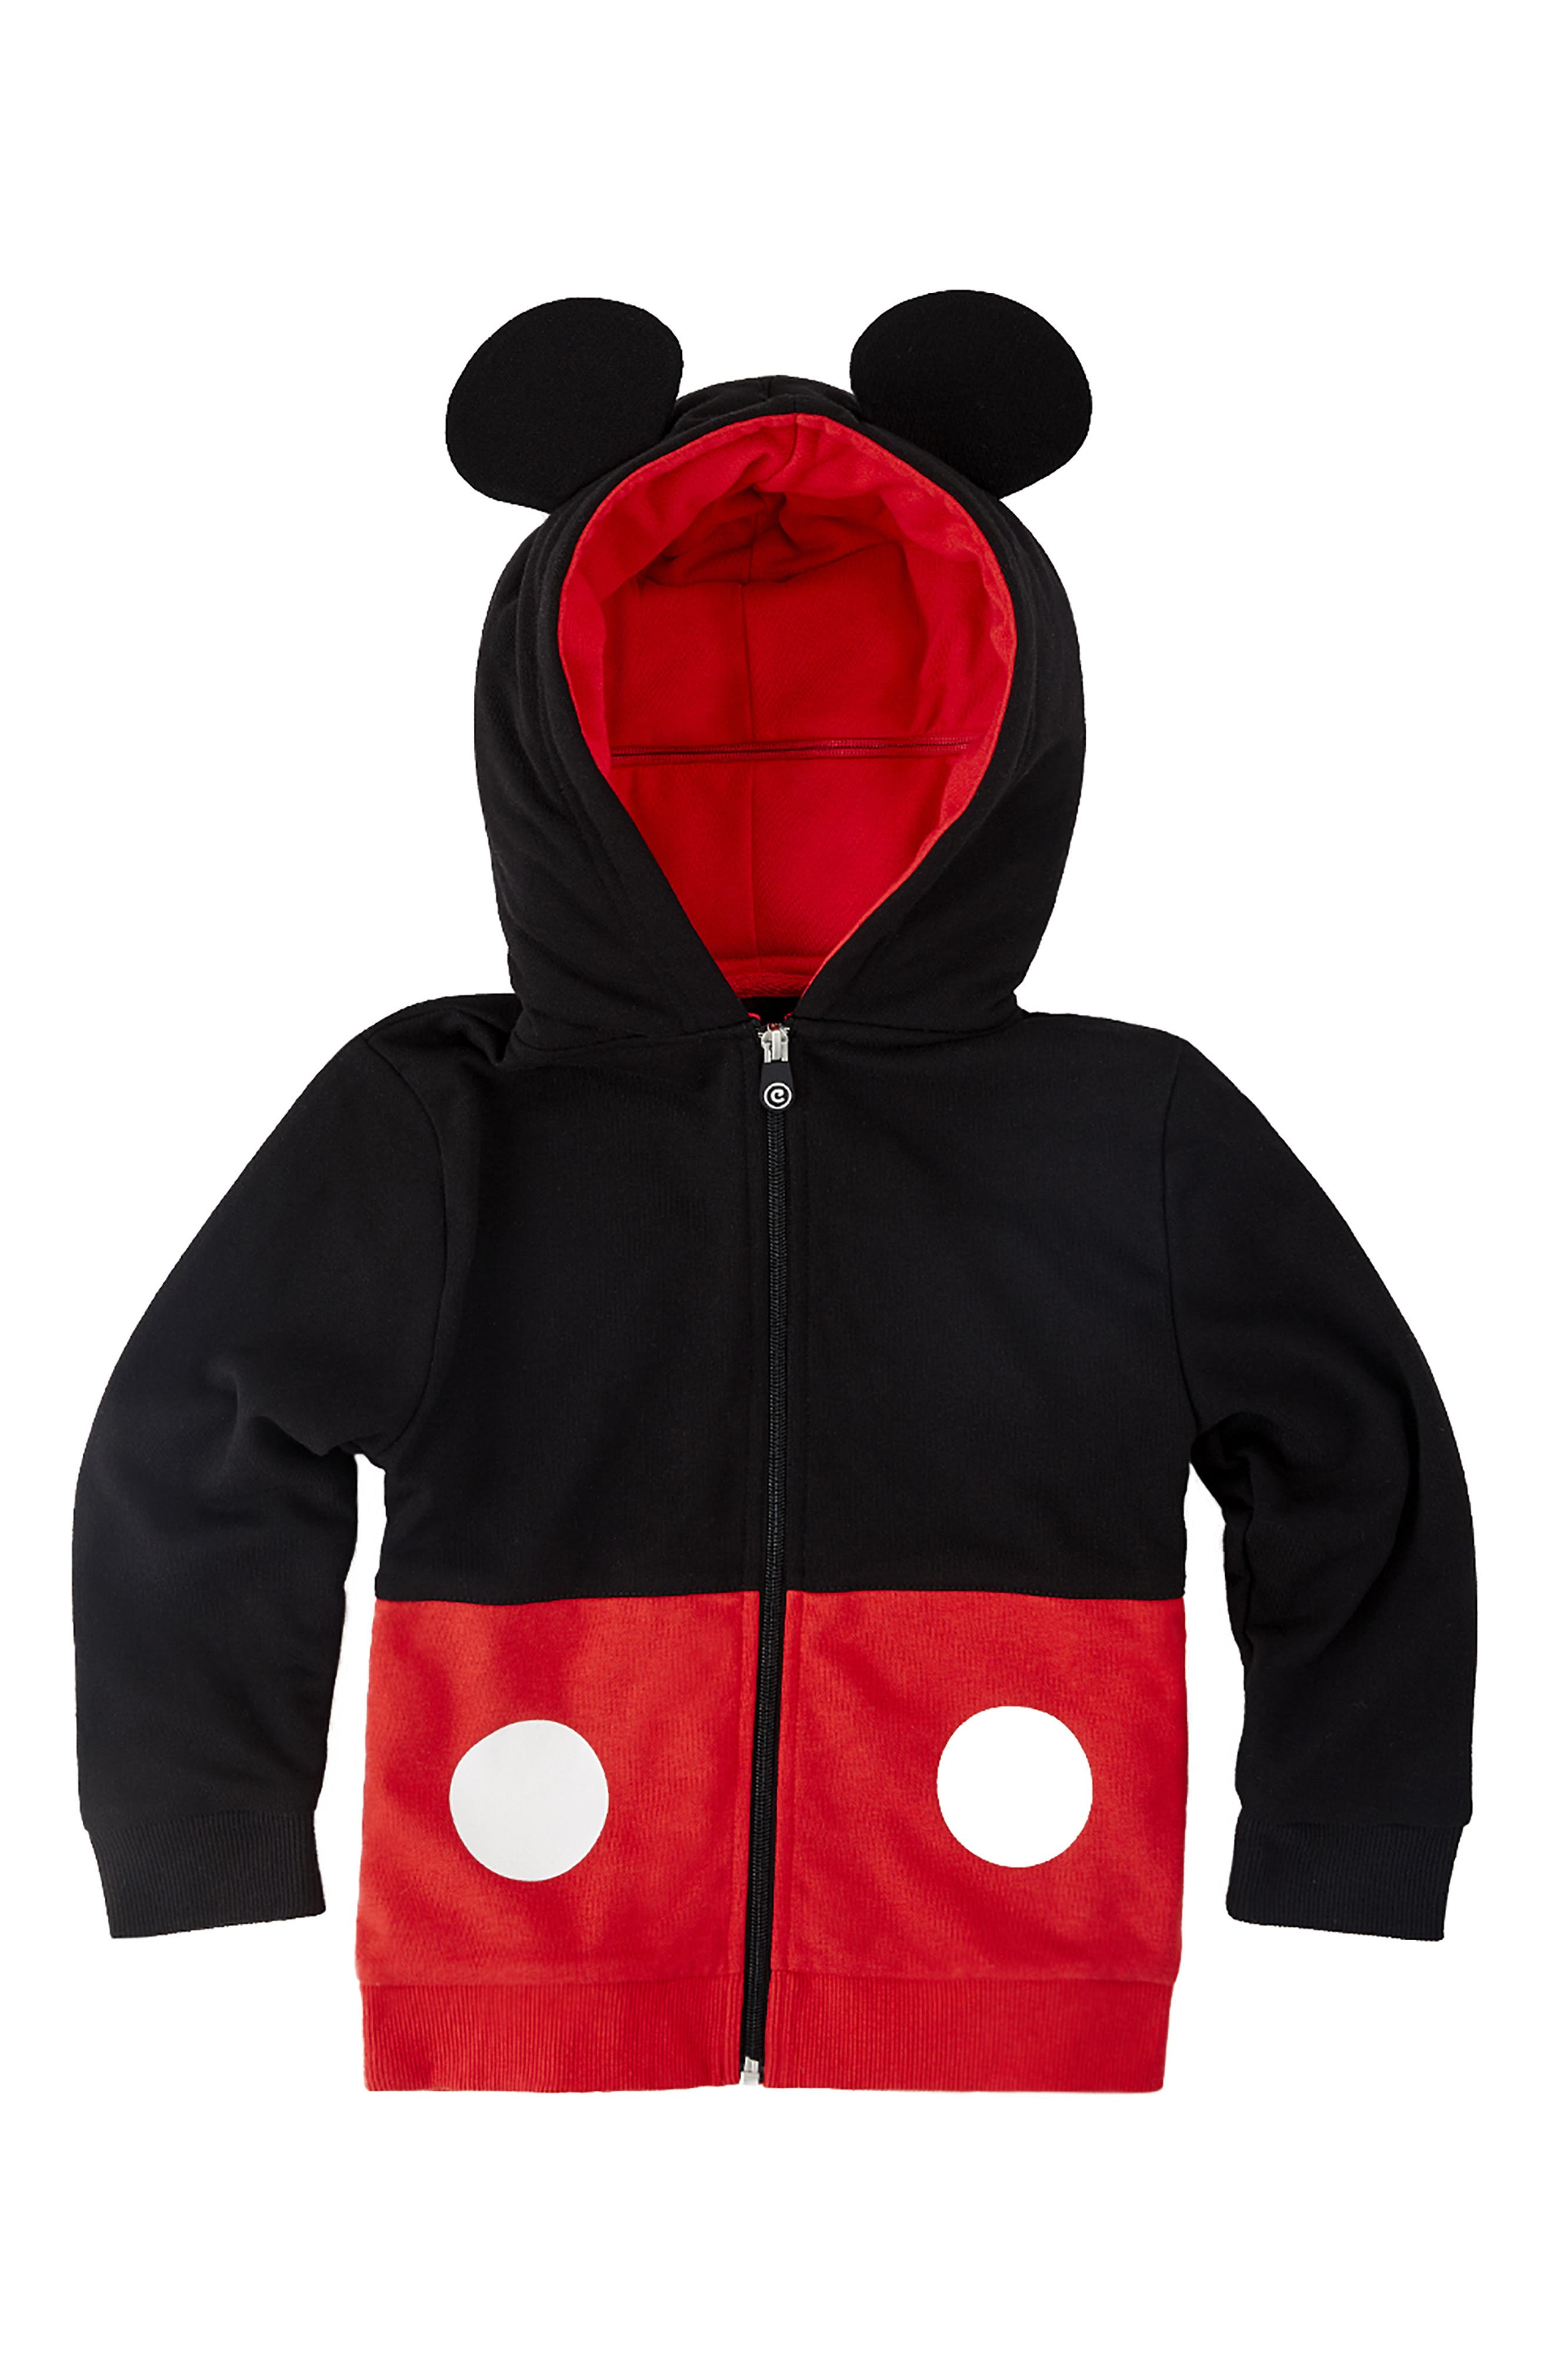 Mickey Mouse<sup>®</sup> 2-in-1 Stuffed Animal Hoodie,                             Alternate thumbnail 7, color,                             BLACK / RED MIX